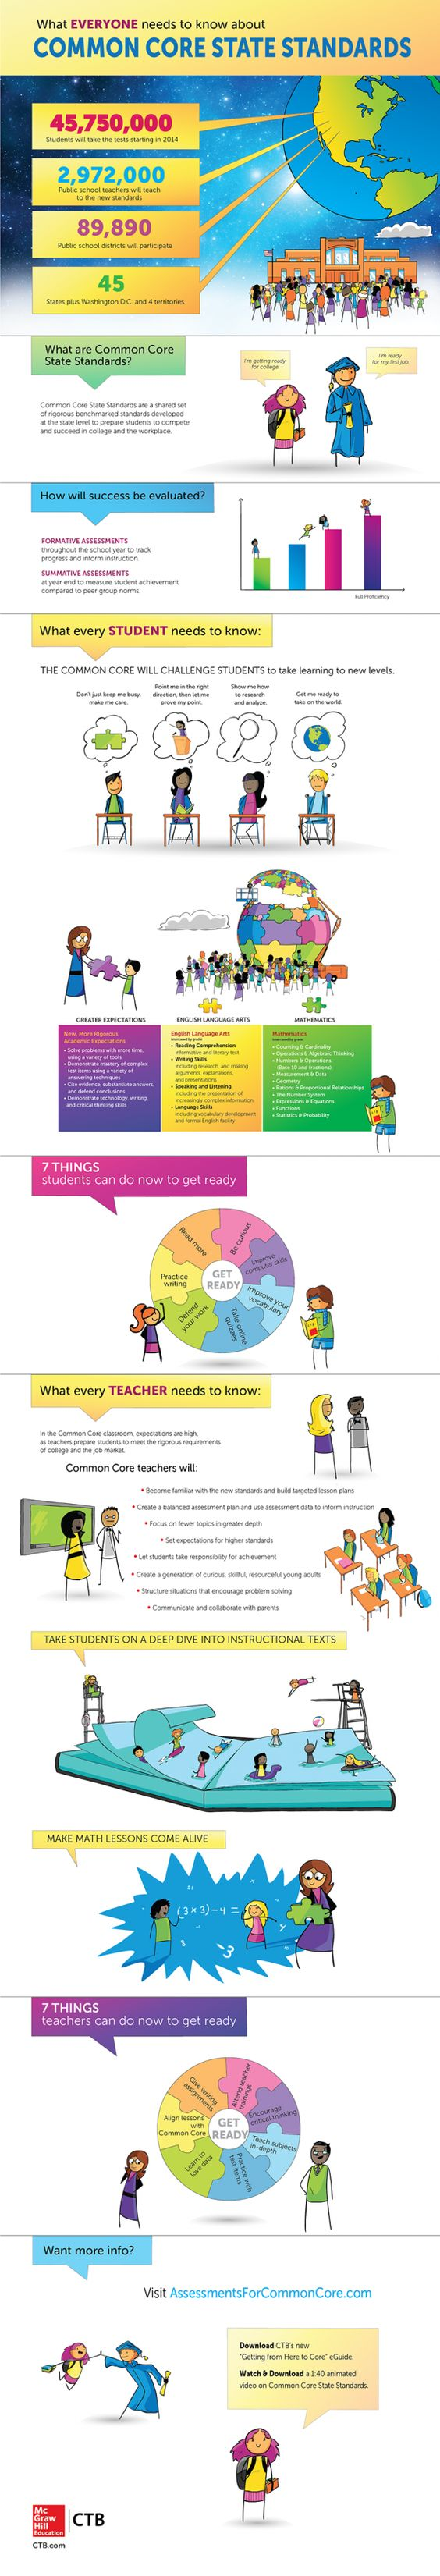 """What Everyone Needs to Know About the Common Core State Standards - Well, this is a very cheerful graphic about Common Core.   One """"interesting"""" point about what teachers can do to get ready is """"Learn to love Data""""...seriously?"""